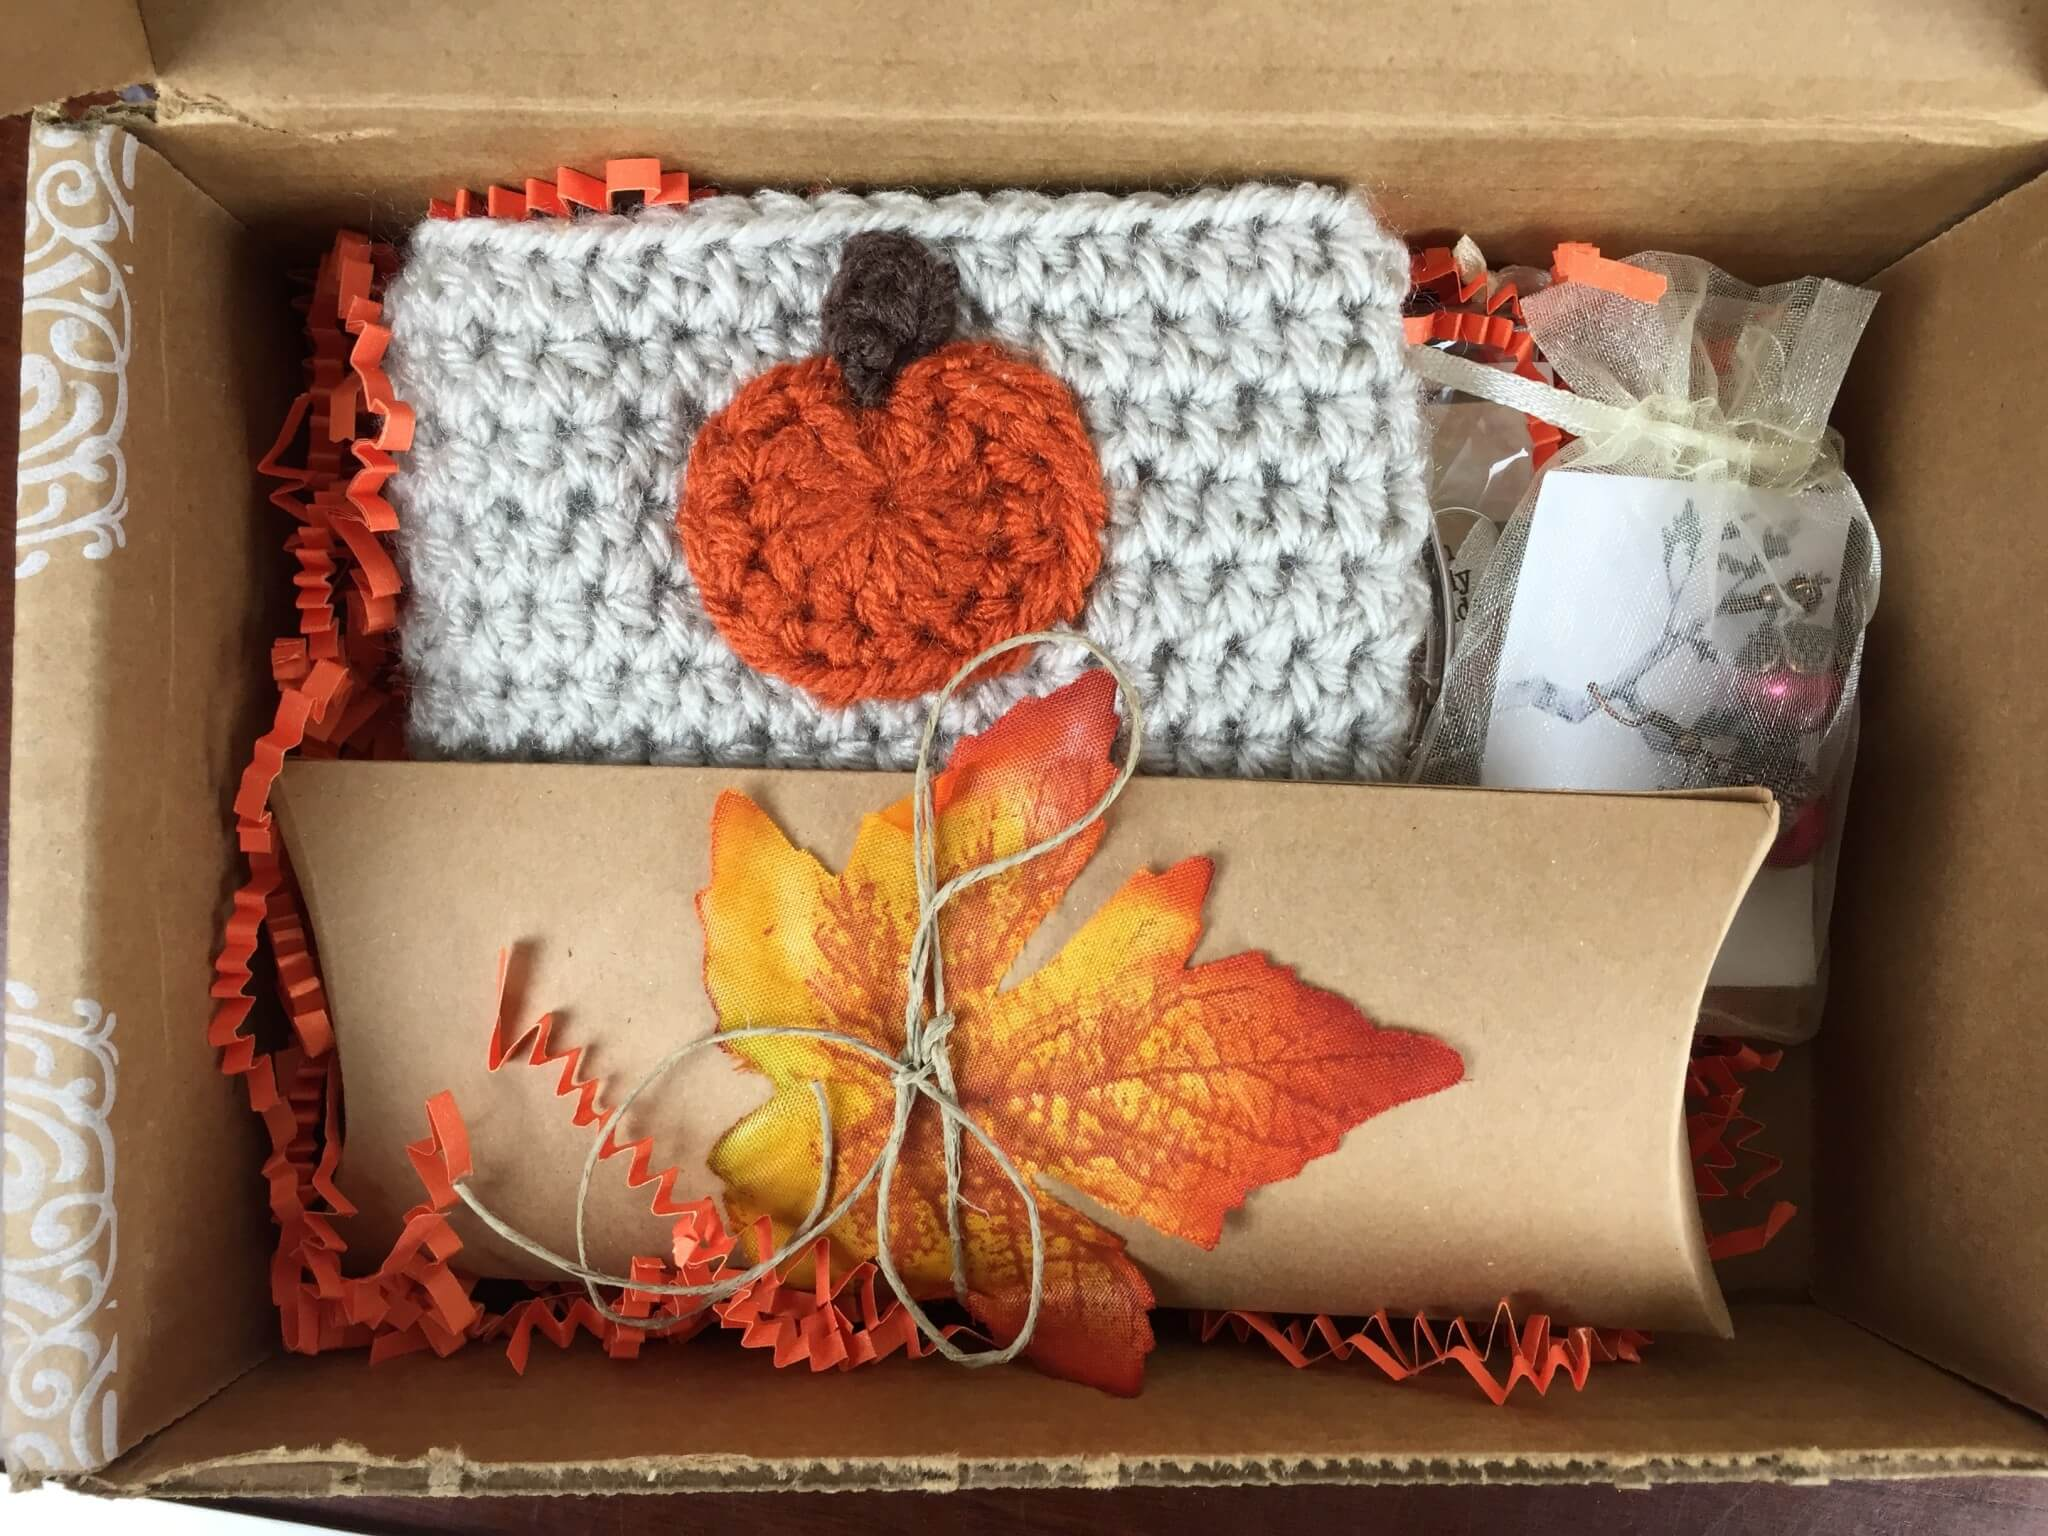 The Believer's Box Subscription Box Review & Coupon Code – November 2015